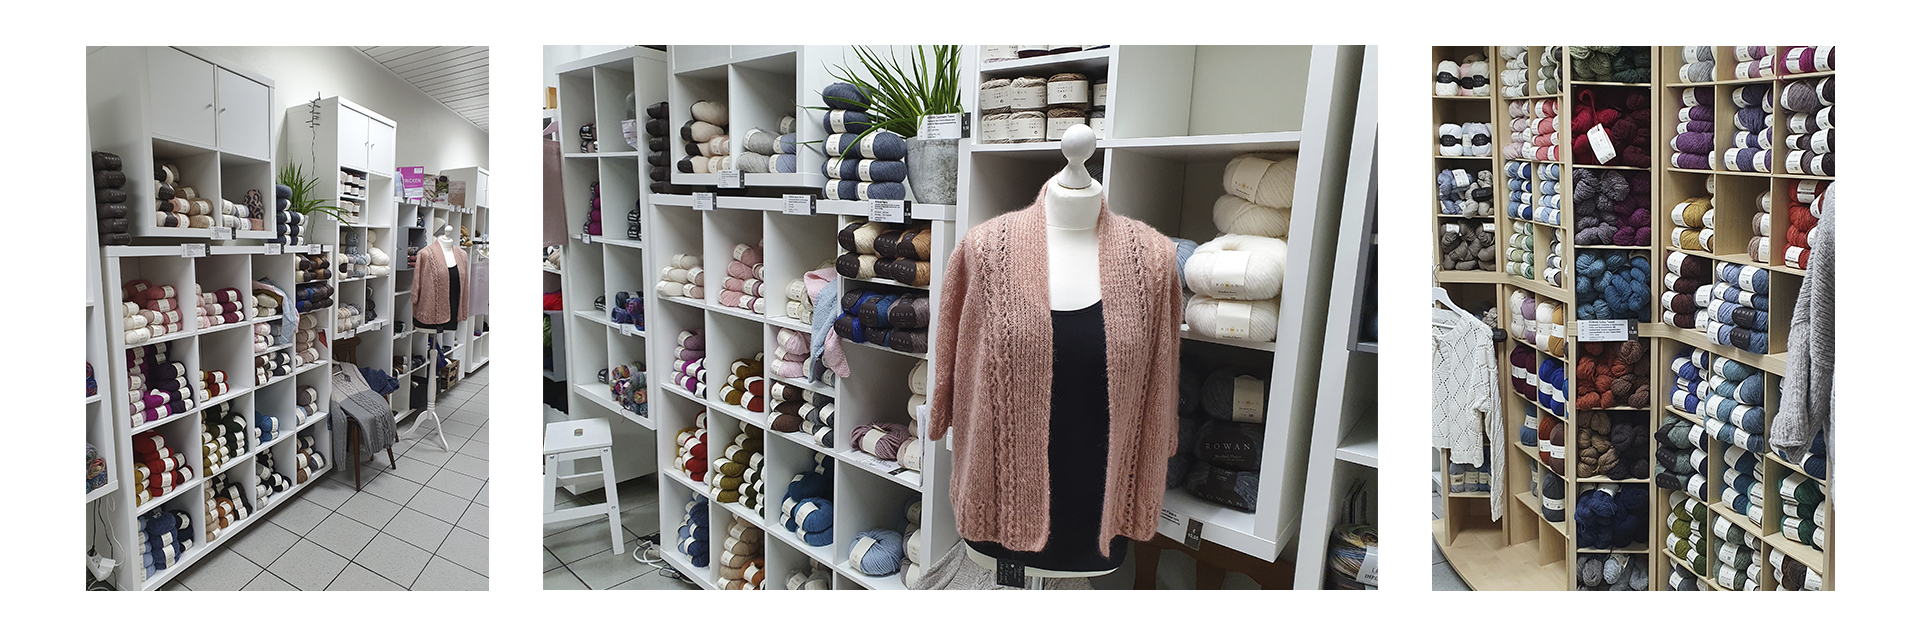 Situated in the heart of the medieval city center of Schwäbisch Gmünd you will find the Rowan Flagship Store, Strickmit!. A knowledgable team, showcases Rowan yarn and other brands in a store of over 140sqm.